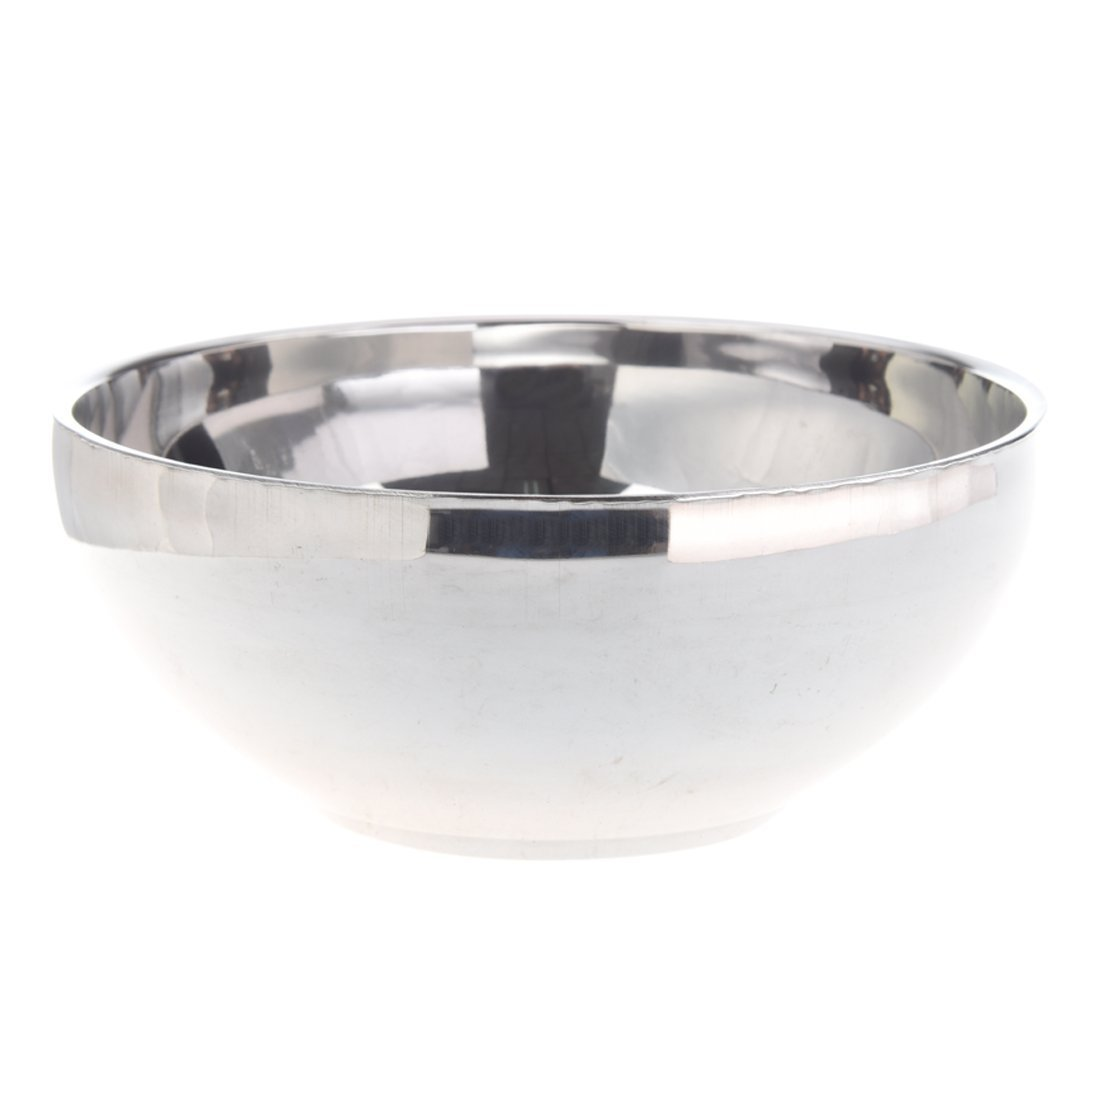 SODIAL(R) Family Tableware 4.6 Dia Round Shaped Silver Tone Stainless Steel Rice Bowl LEPAZIK4558